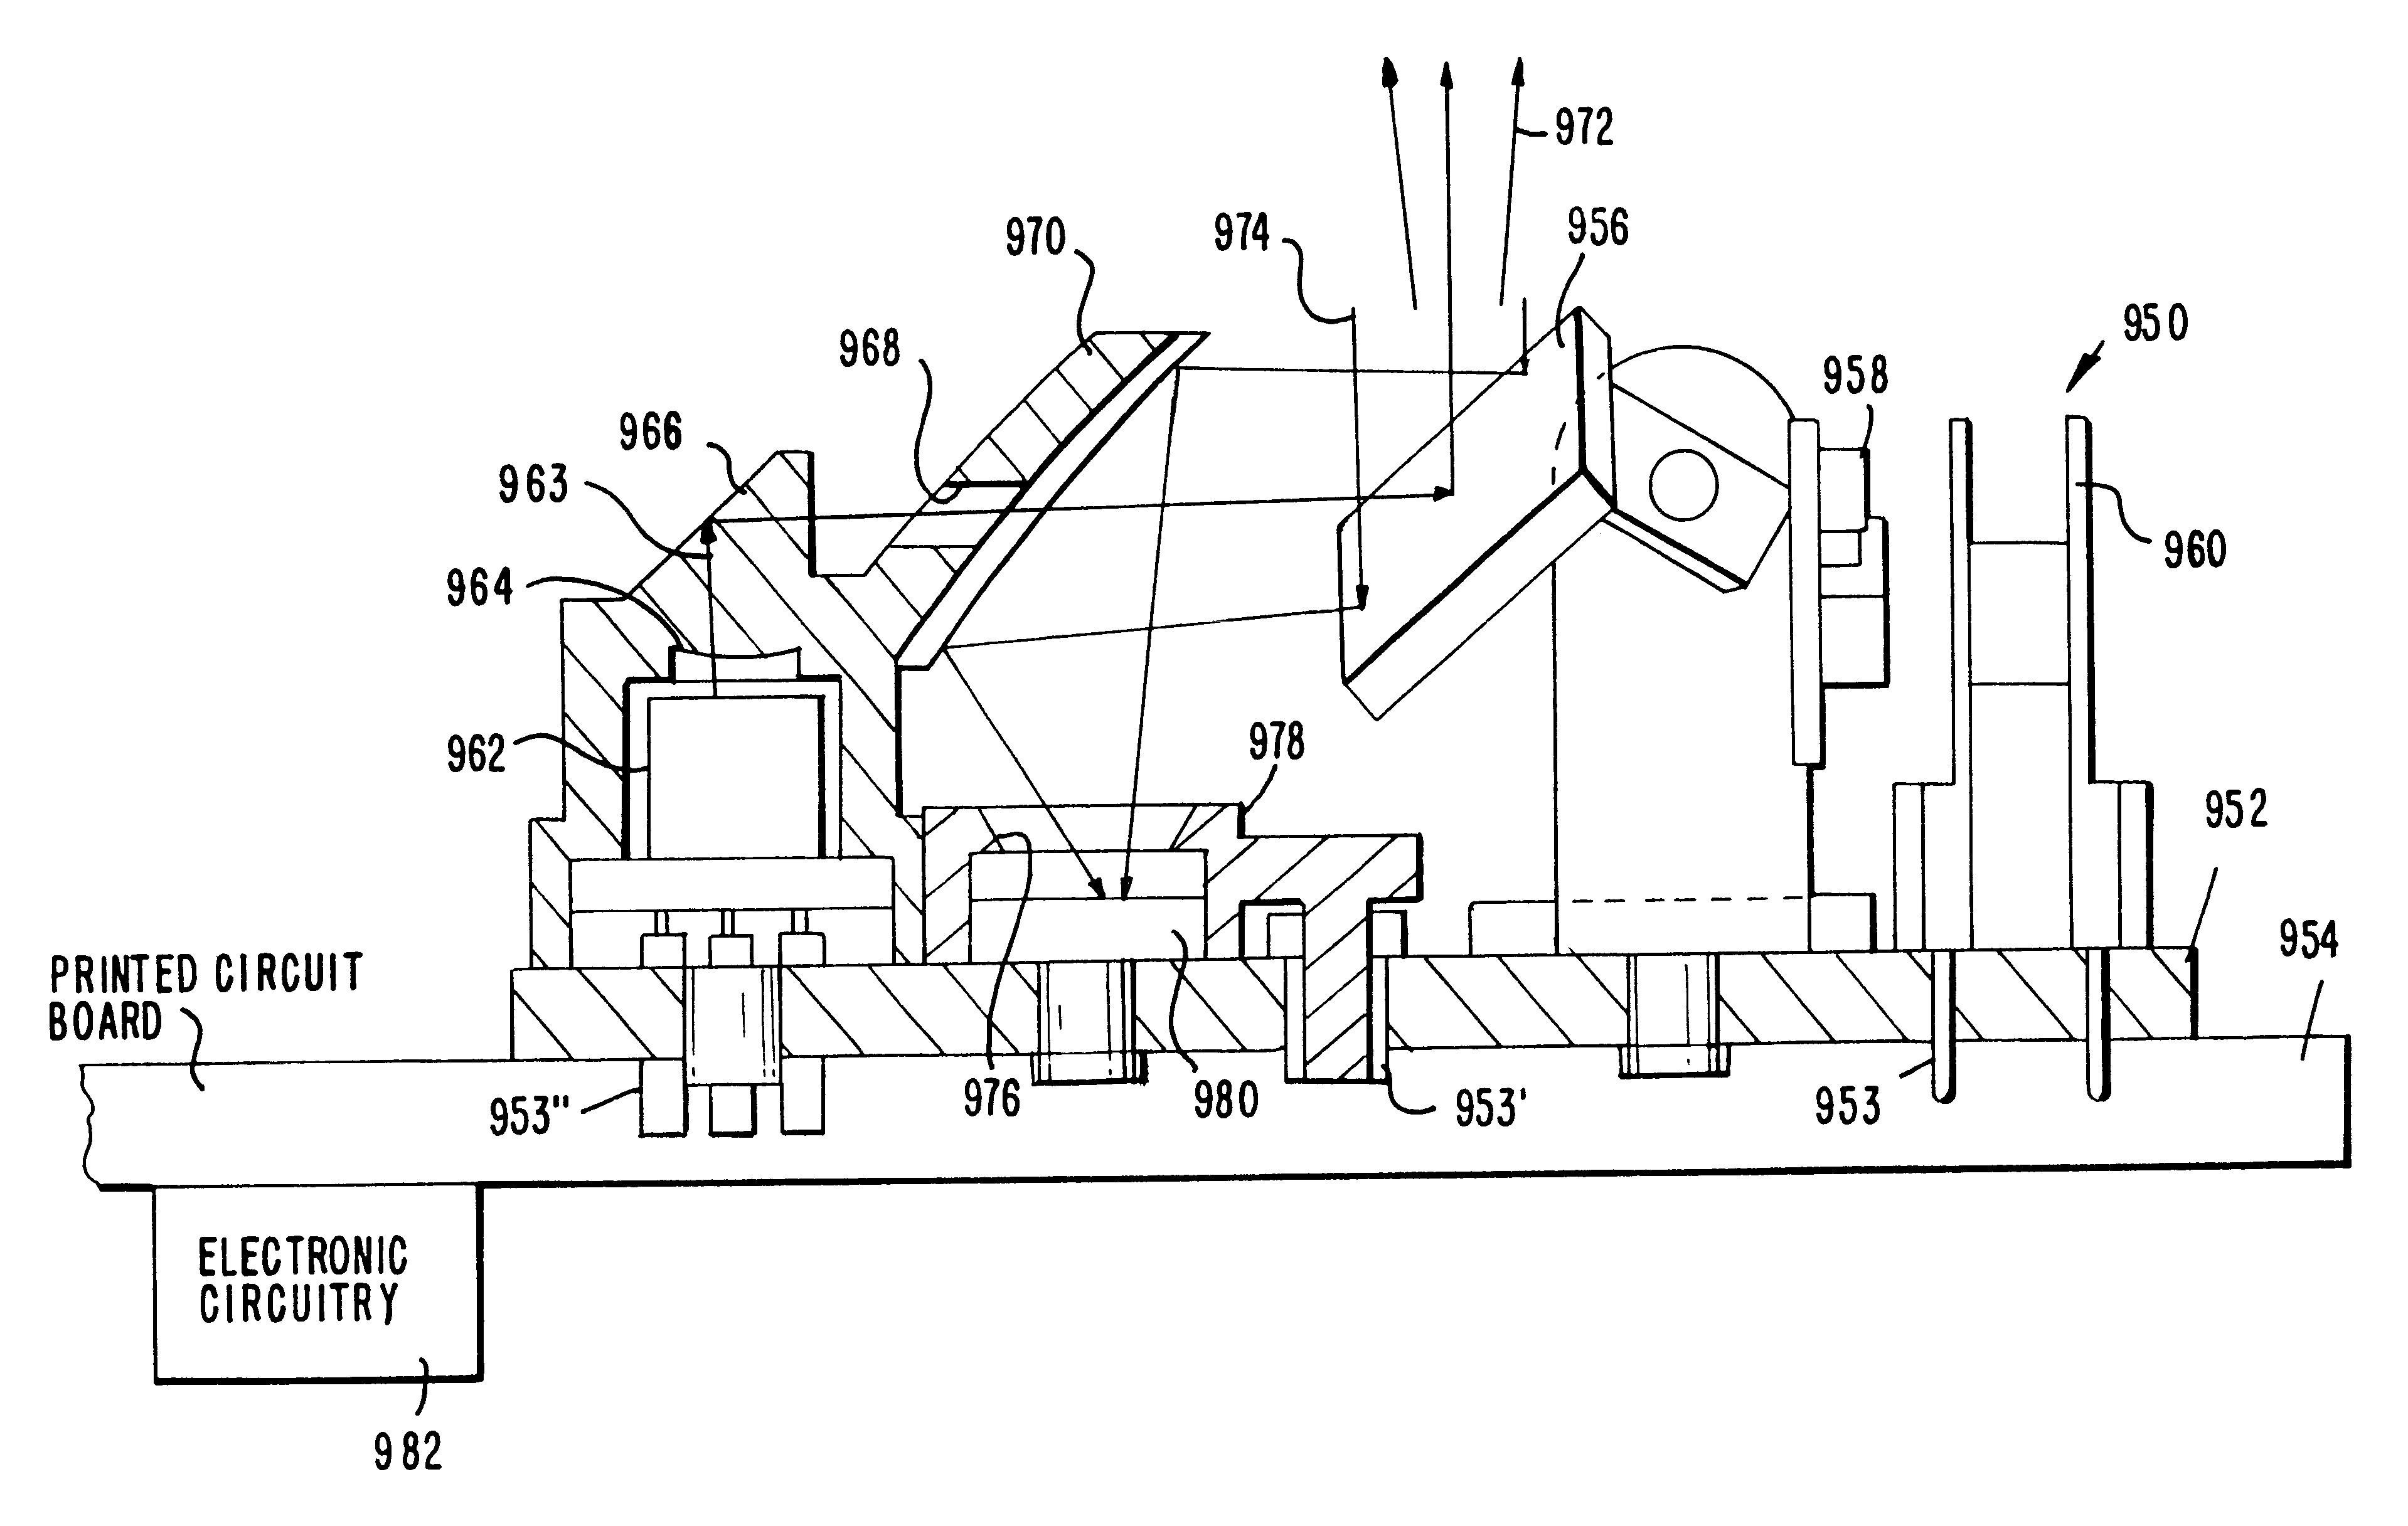 Patent Us 6607132 B1 And B Continuous Flow Production Of A Printed Circuit Board 6 First Claim